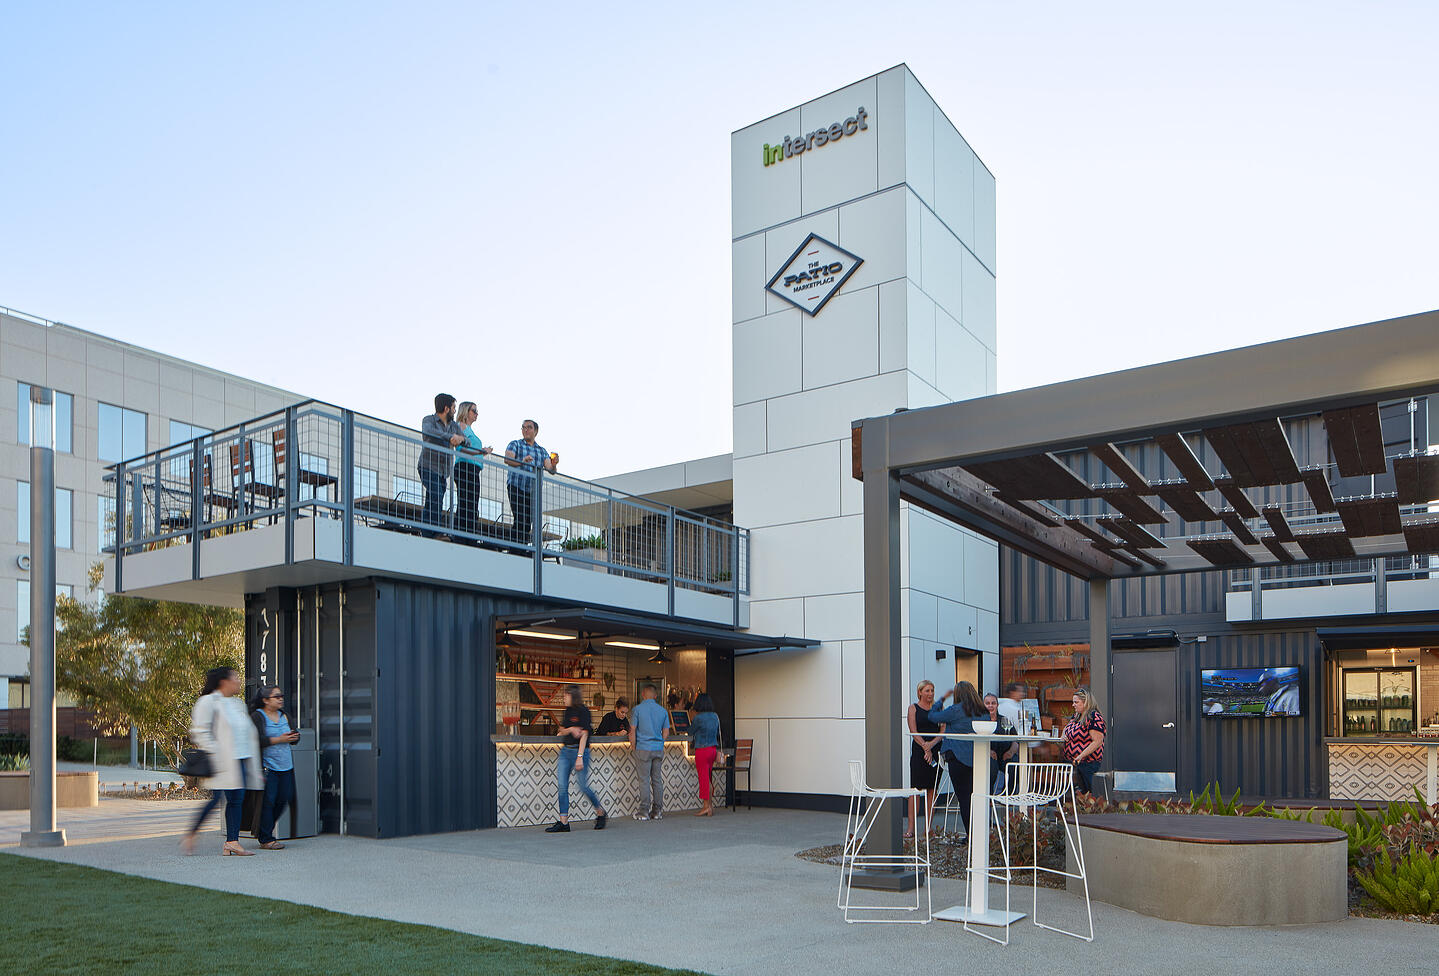 Container Pavilion at Intersect-Hero@2x-people enjoying refreshments from tenant spaces and upper patio